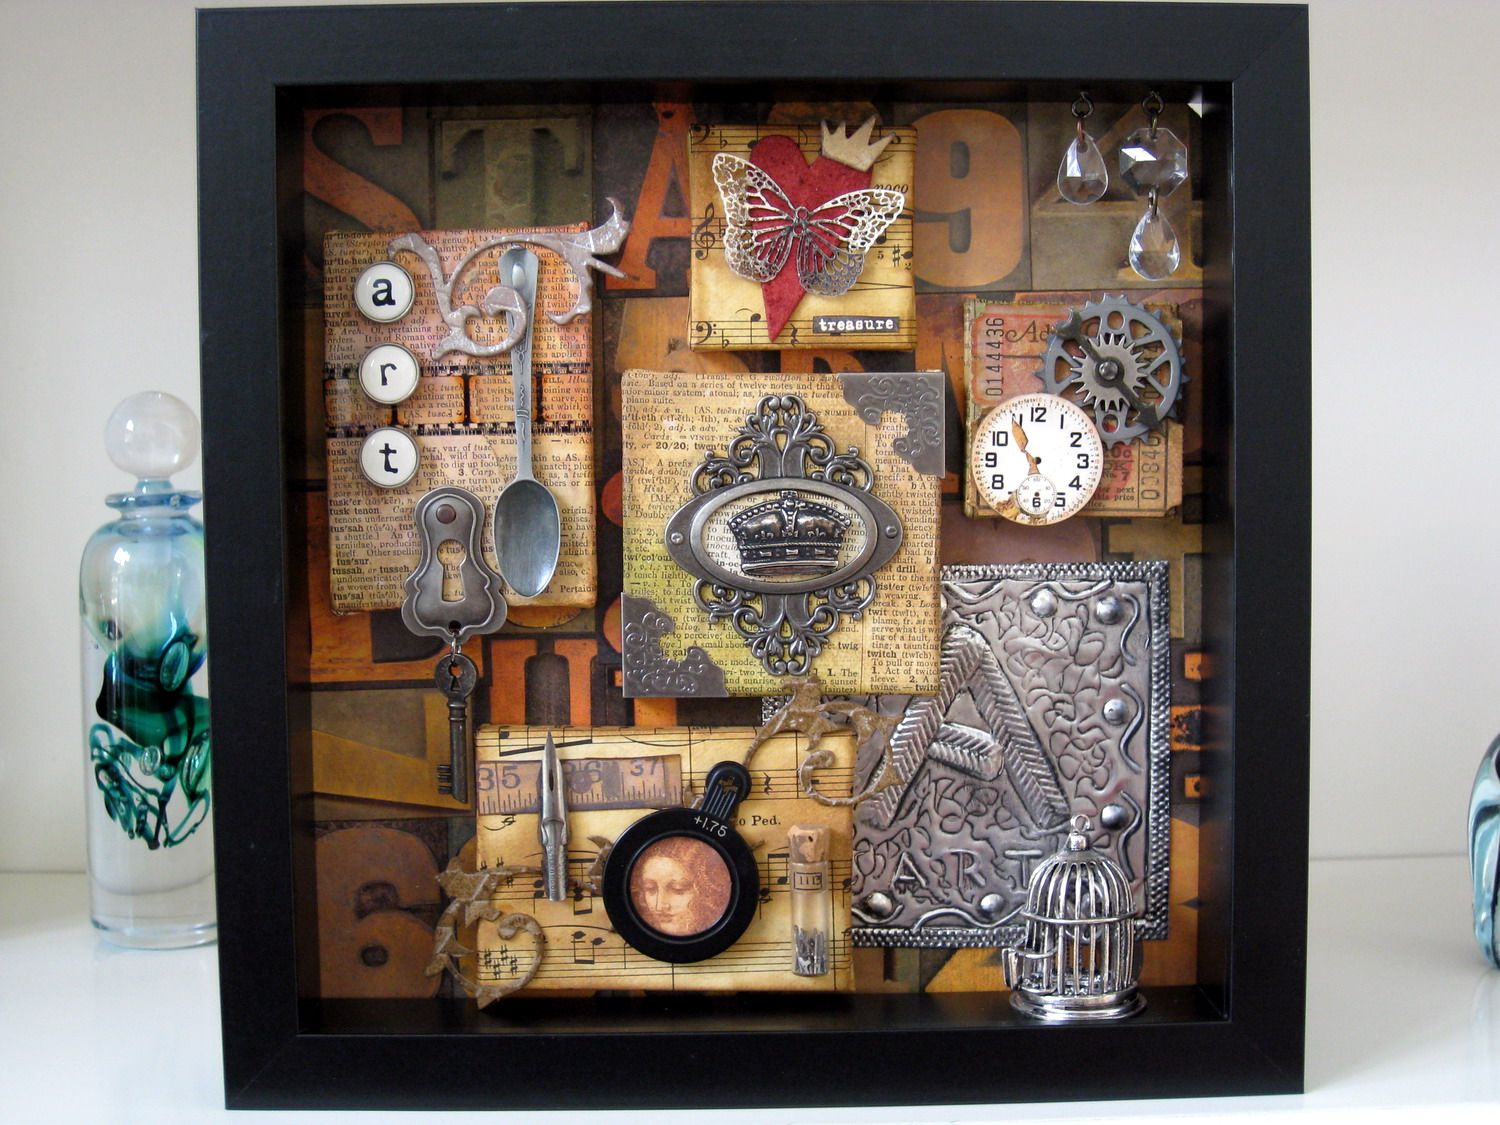 Best Shadow Box Ideas Pictures, Decor, and Remodel | Pinterest